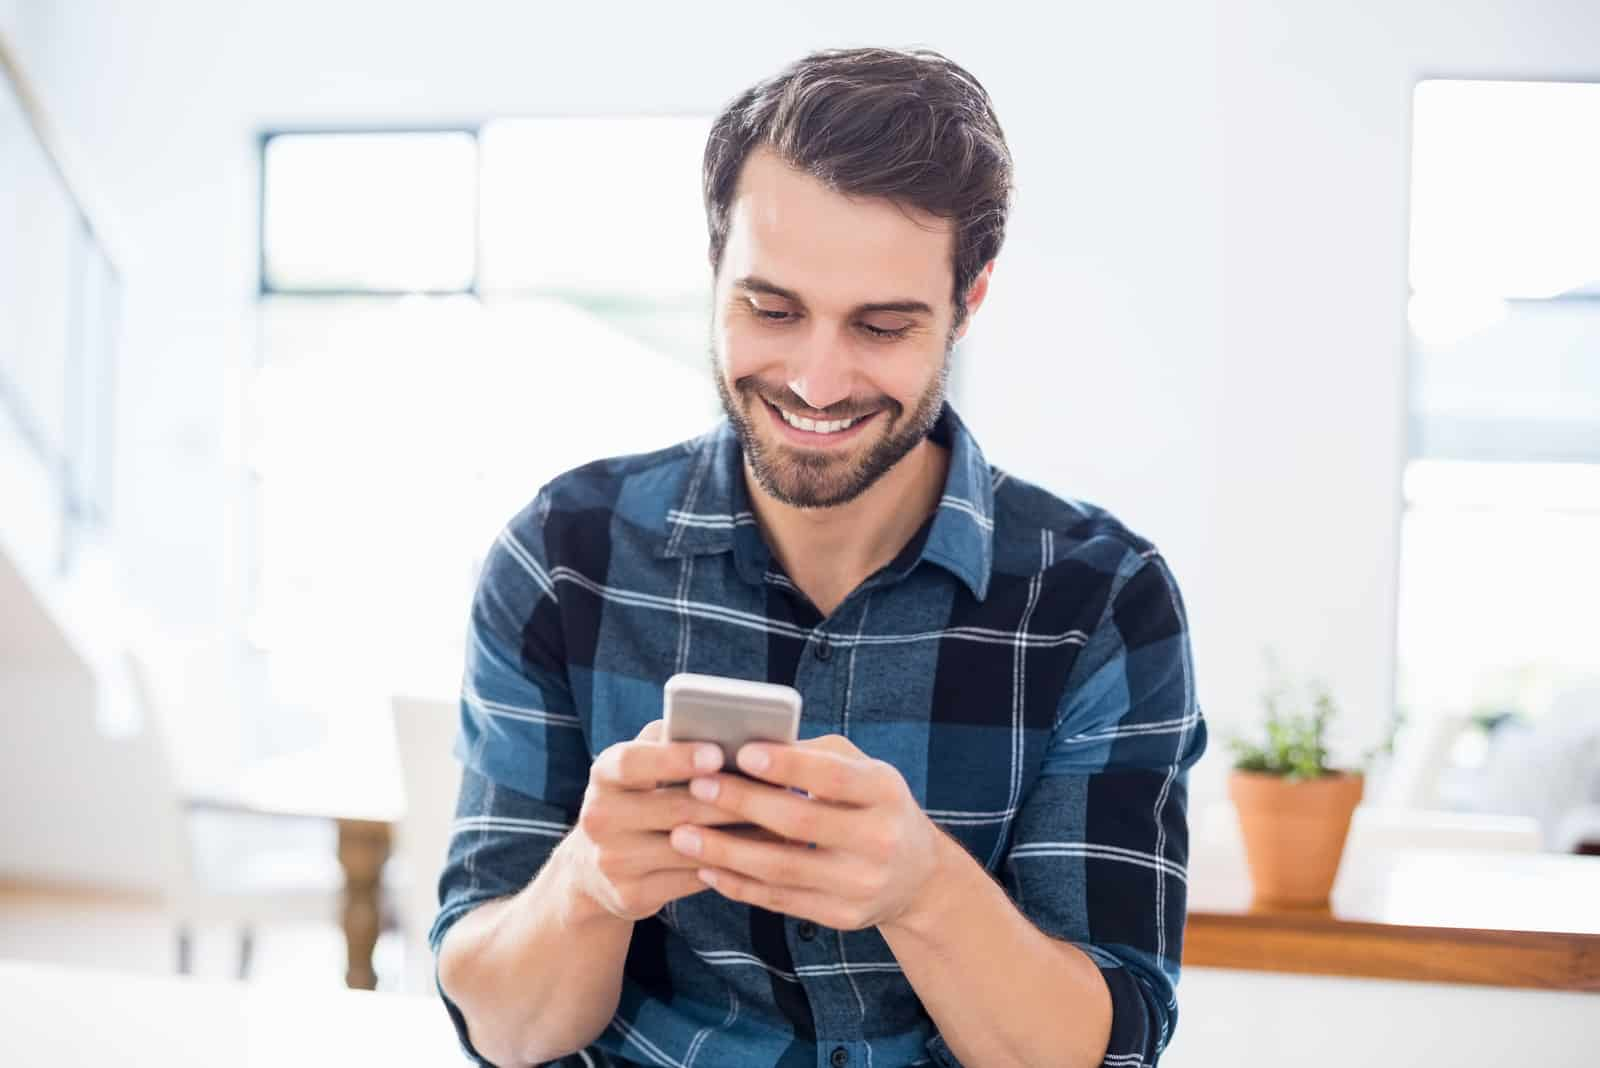 smiling man using his phone